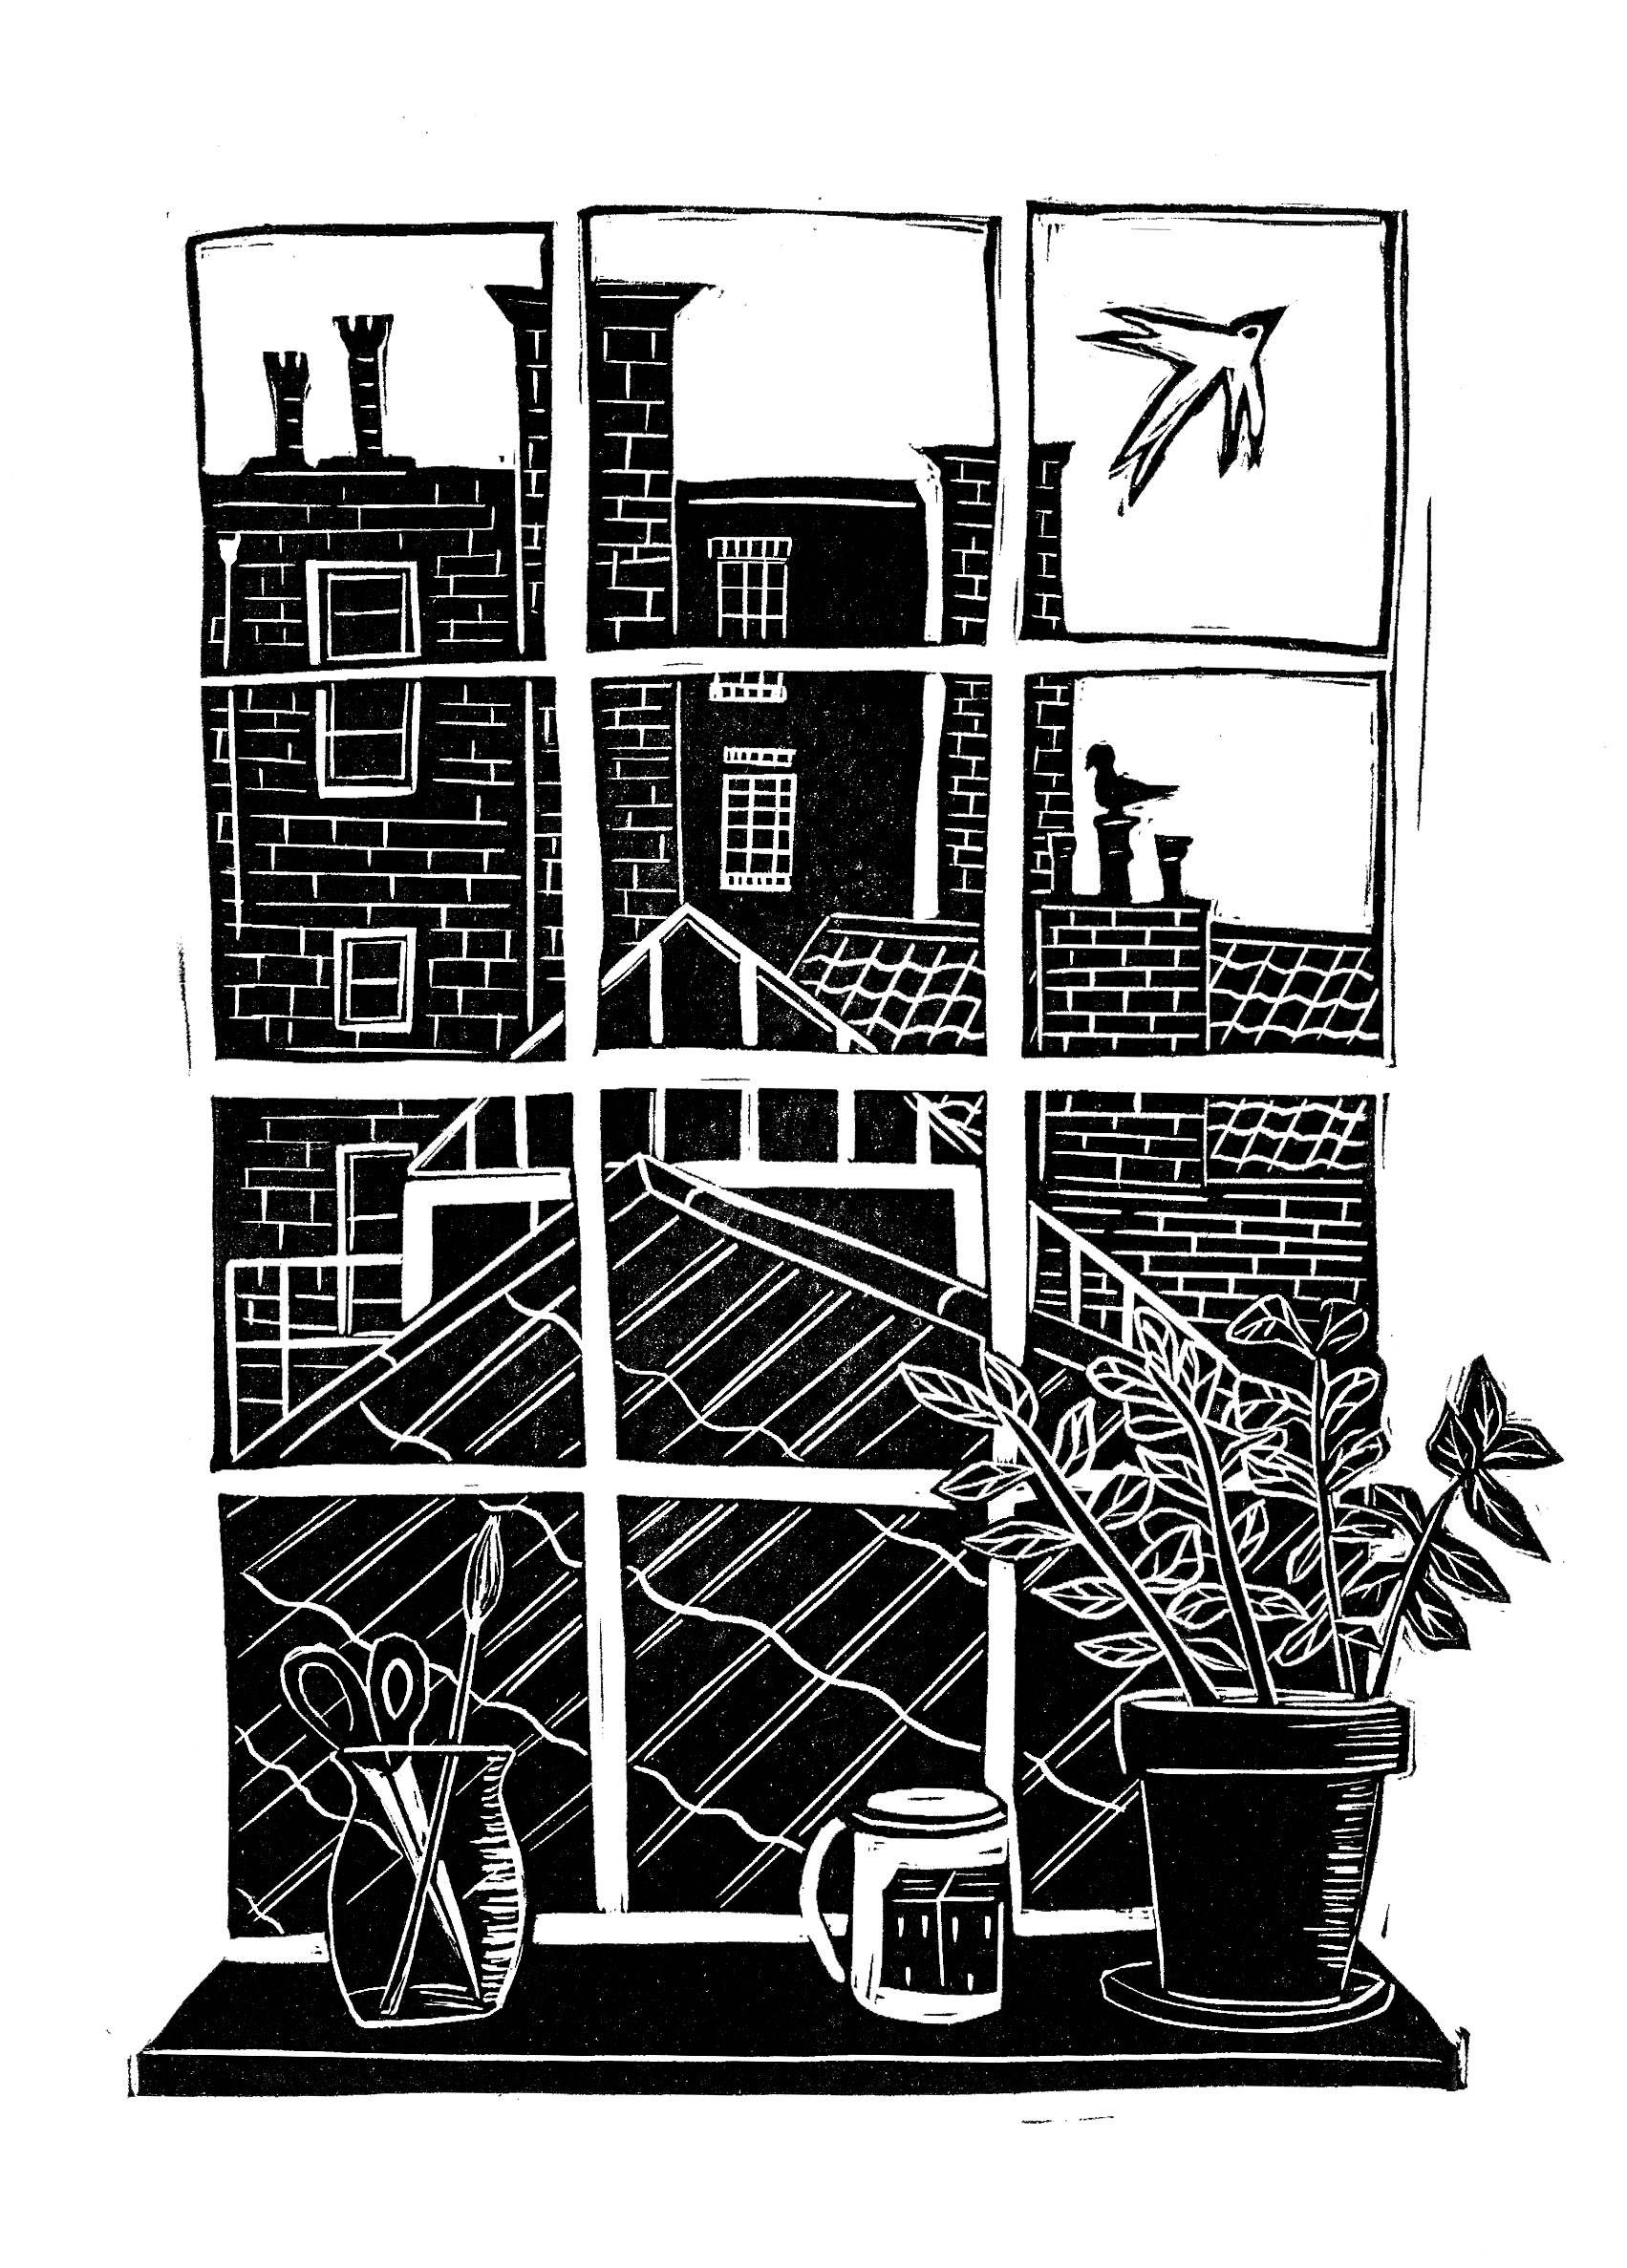 "<span class=""link fancybox-details-link""><a href=""/exhibitions/18/works/image_standalone1065/"">View Detail Page</a></span><p>Victoria Willmott</p><p>Open View</p><p>linocut</p><p>30 x 40cm</p><p>£110 framed</p><p>£75 unframed</p>"